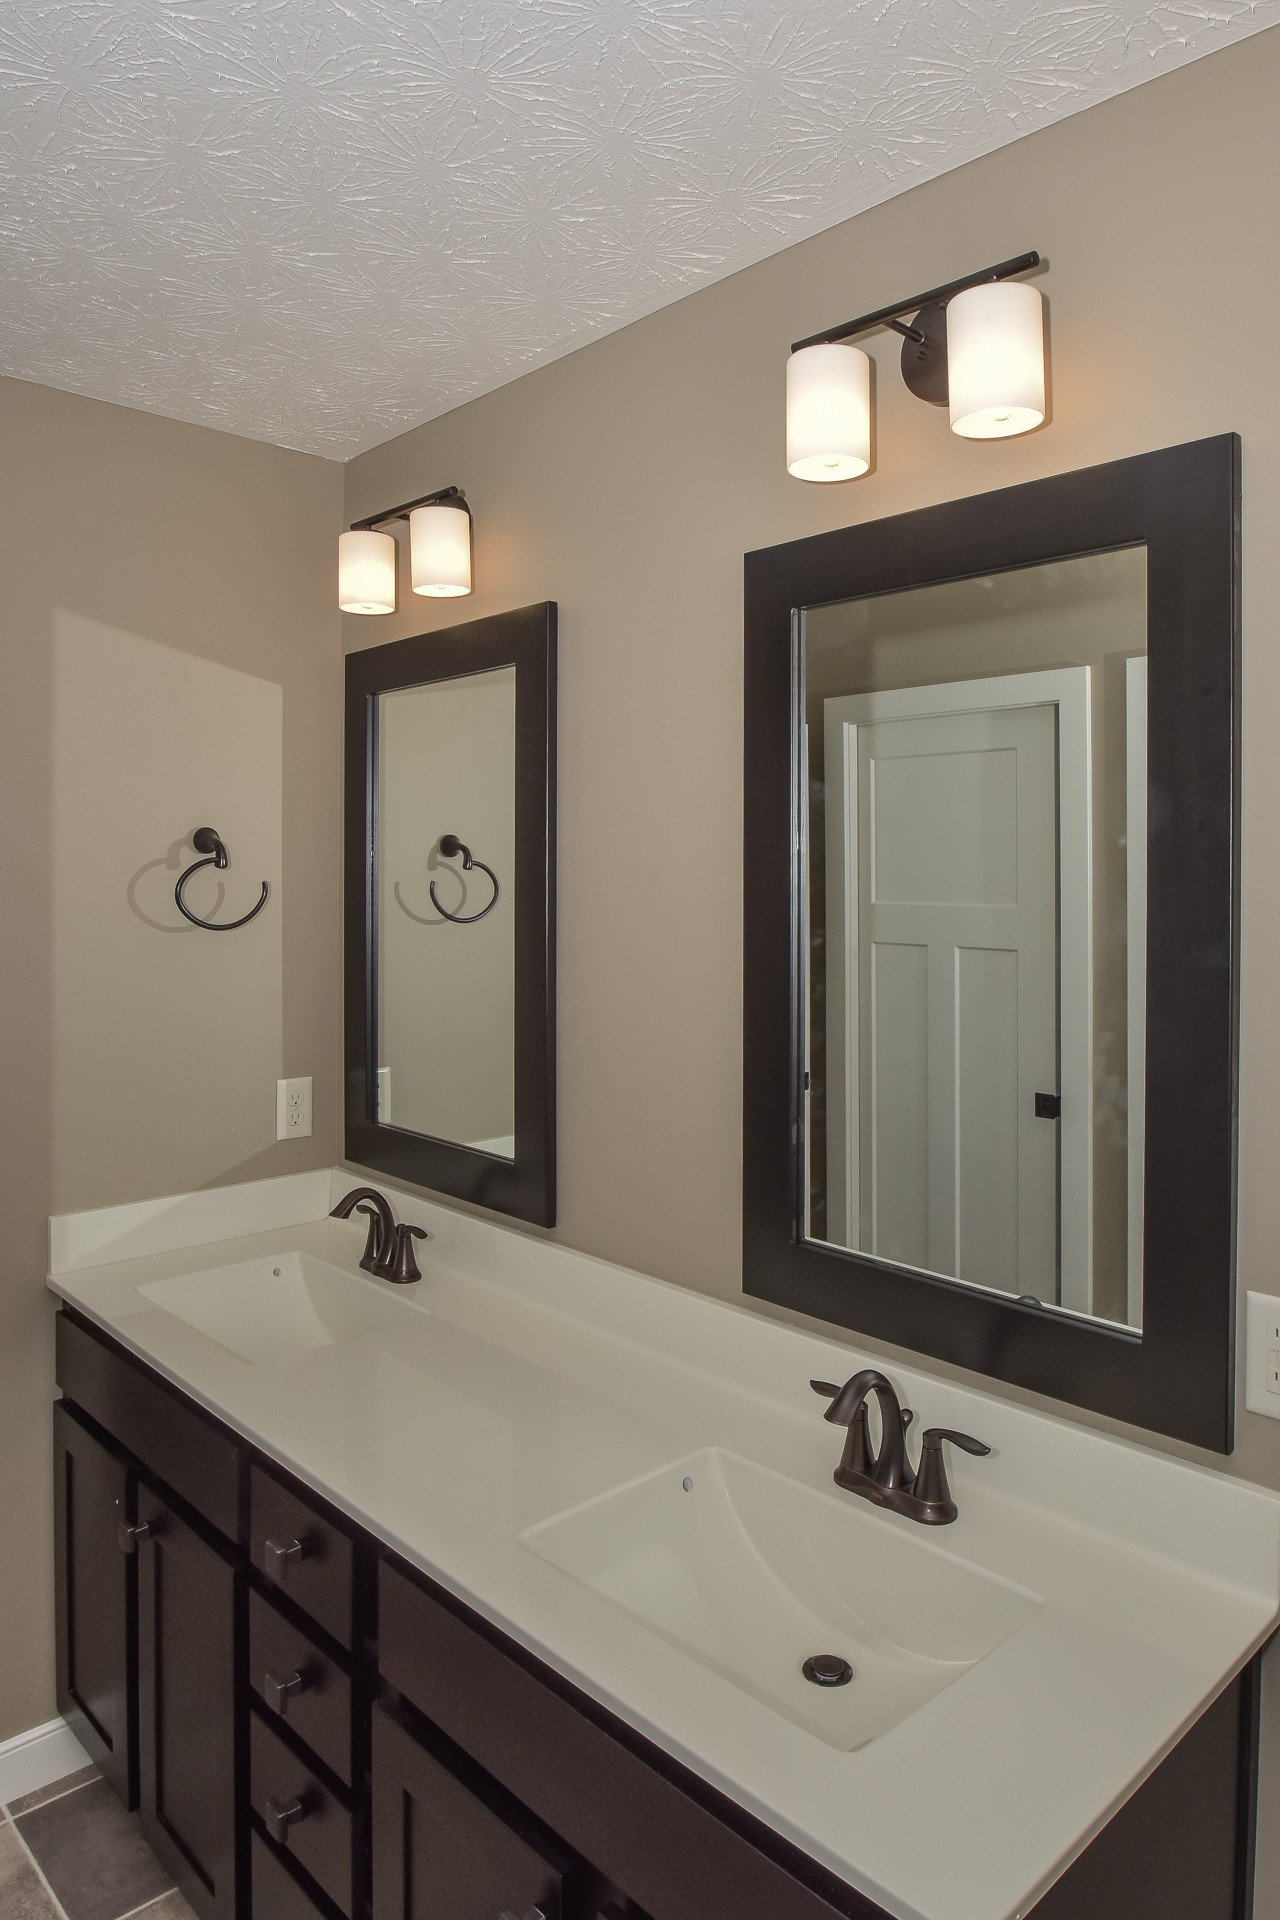 Norwich Double Espresso vanity, one-pc cultured marble top in biscuit with wave sink and Eva ORB fixture, Replay light fixture